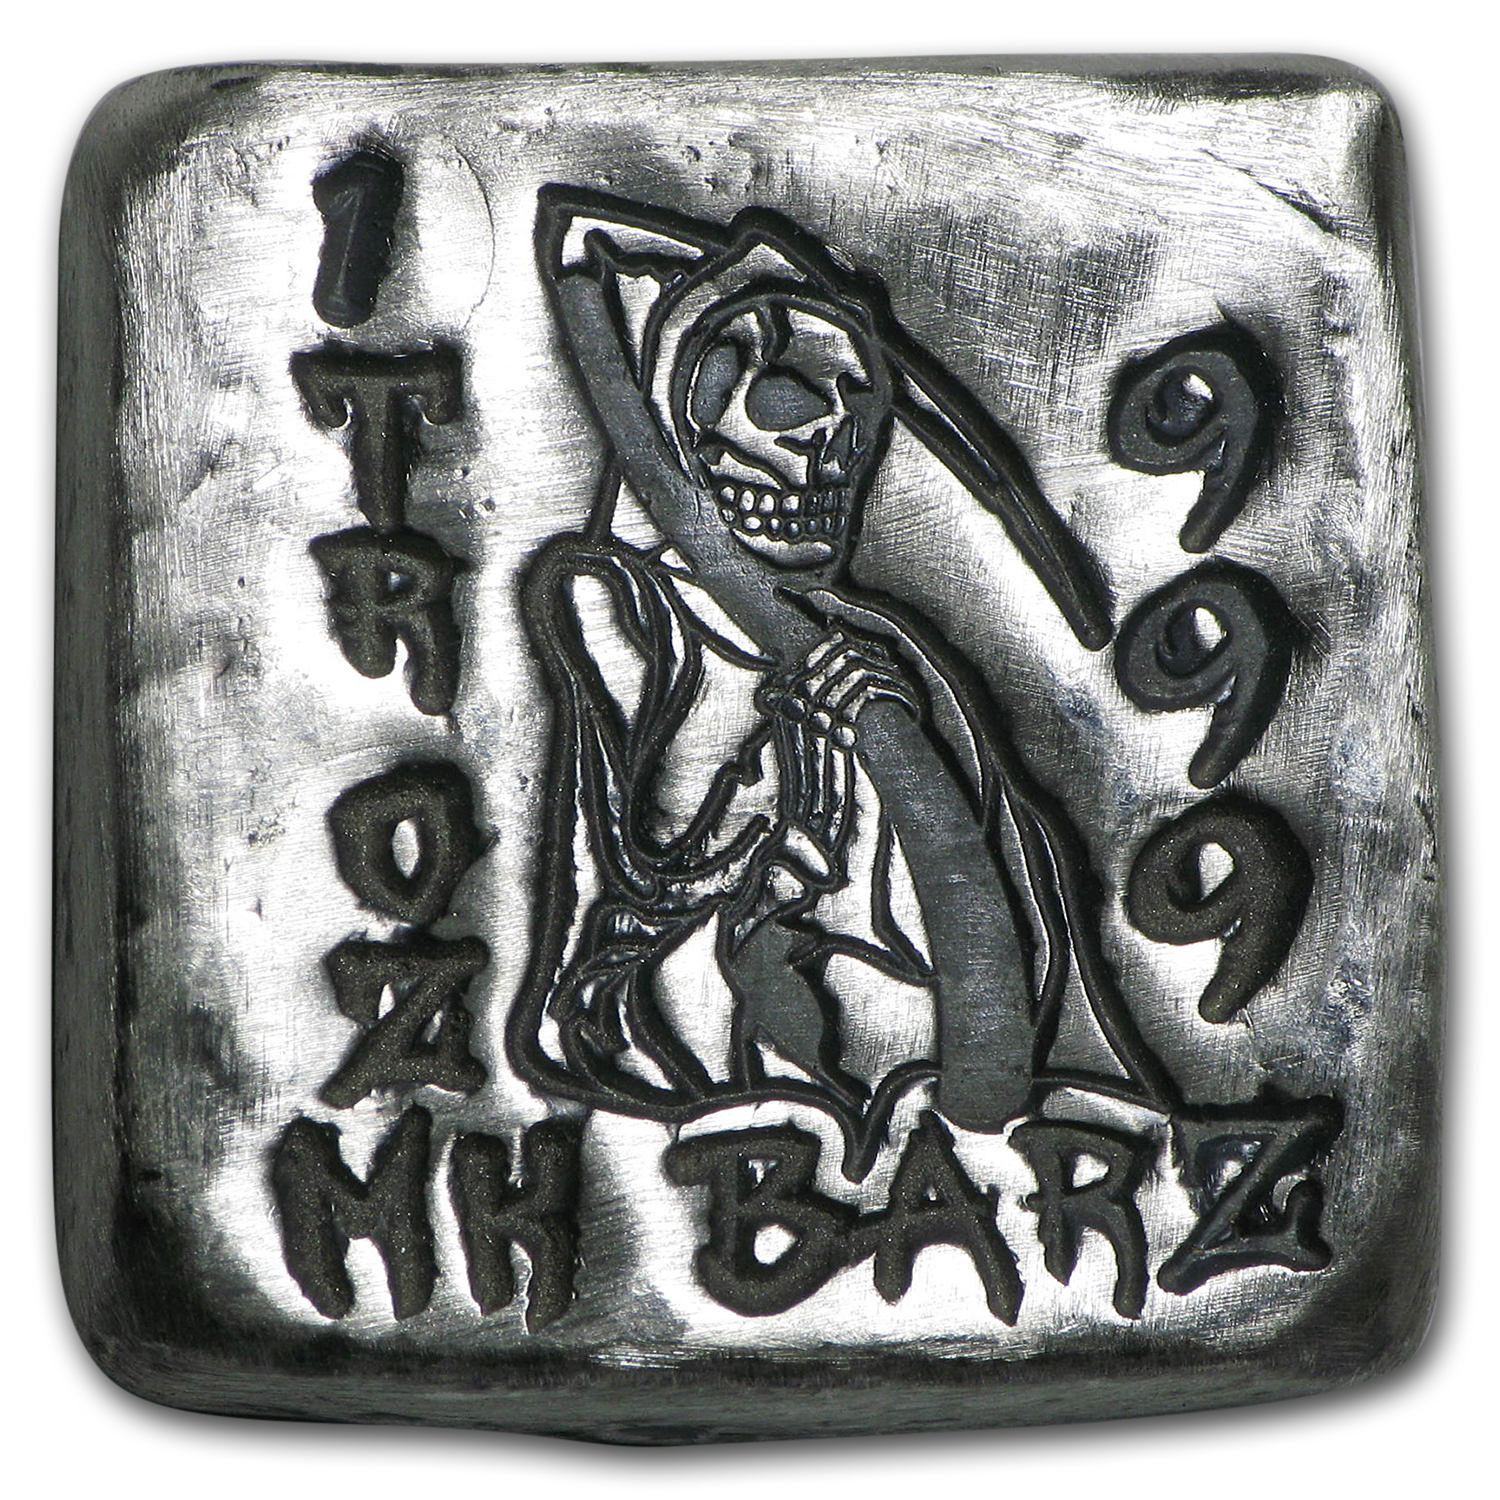 1 oz Silver Square - MK Barz (Grim Reaper, Death is Waiting)